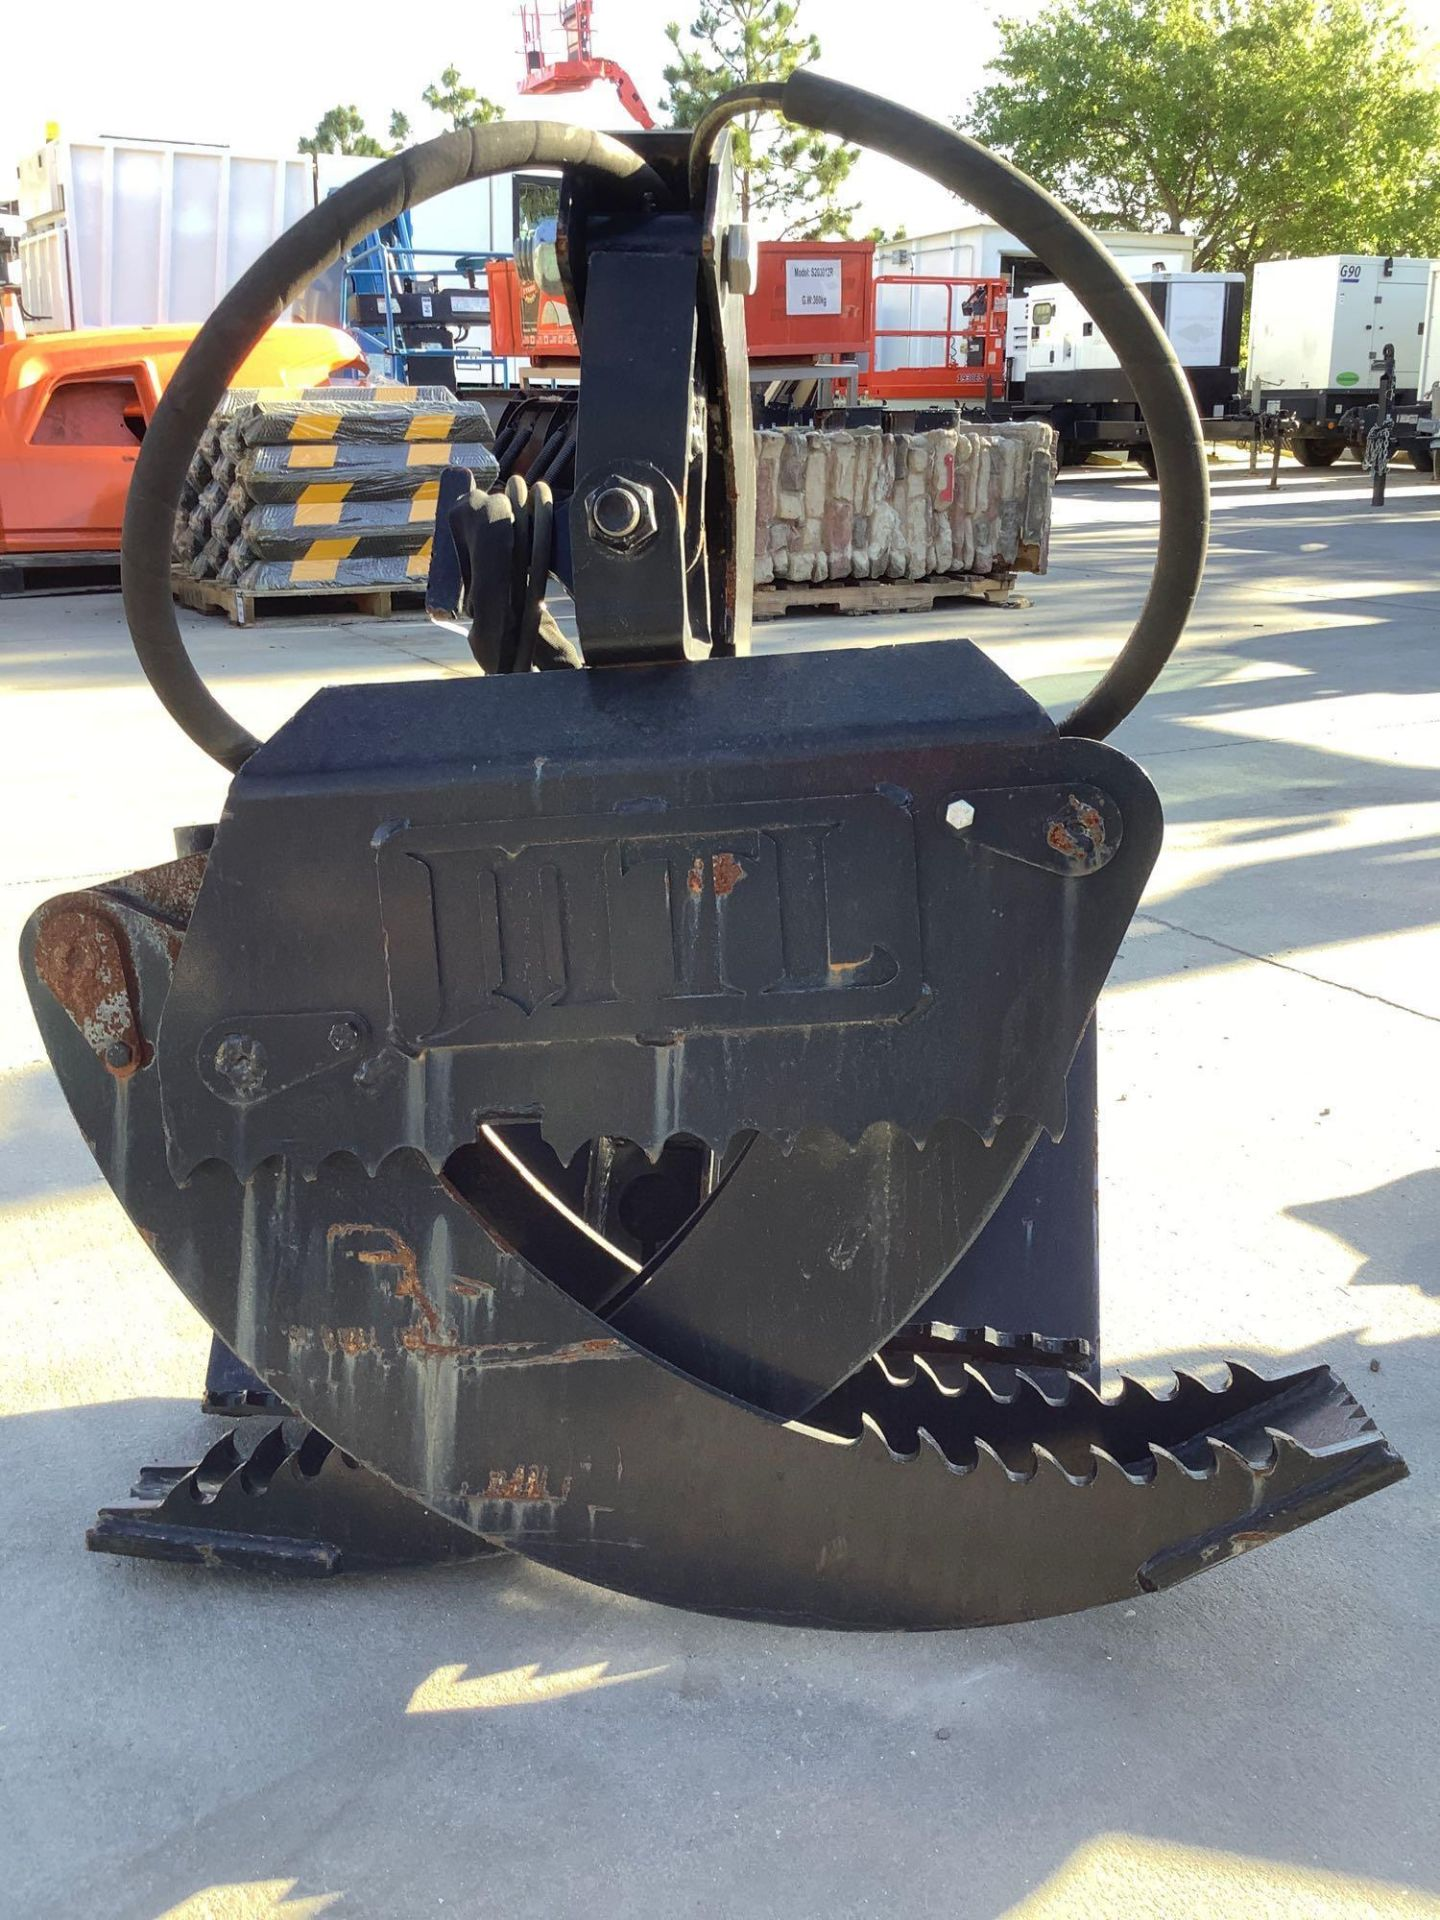 LOG GRAPPLE ATTACHMENT FOR SKID STEER/EQUIPMENT - Image 8 of 8